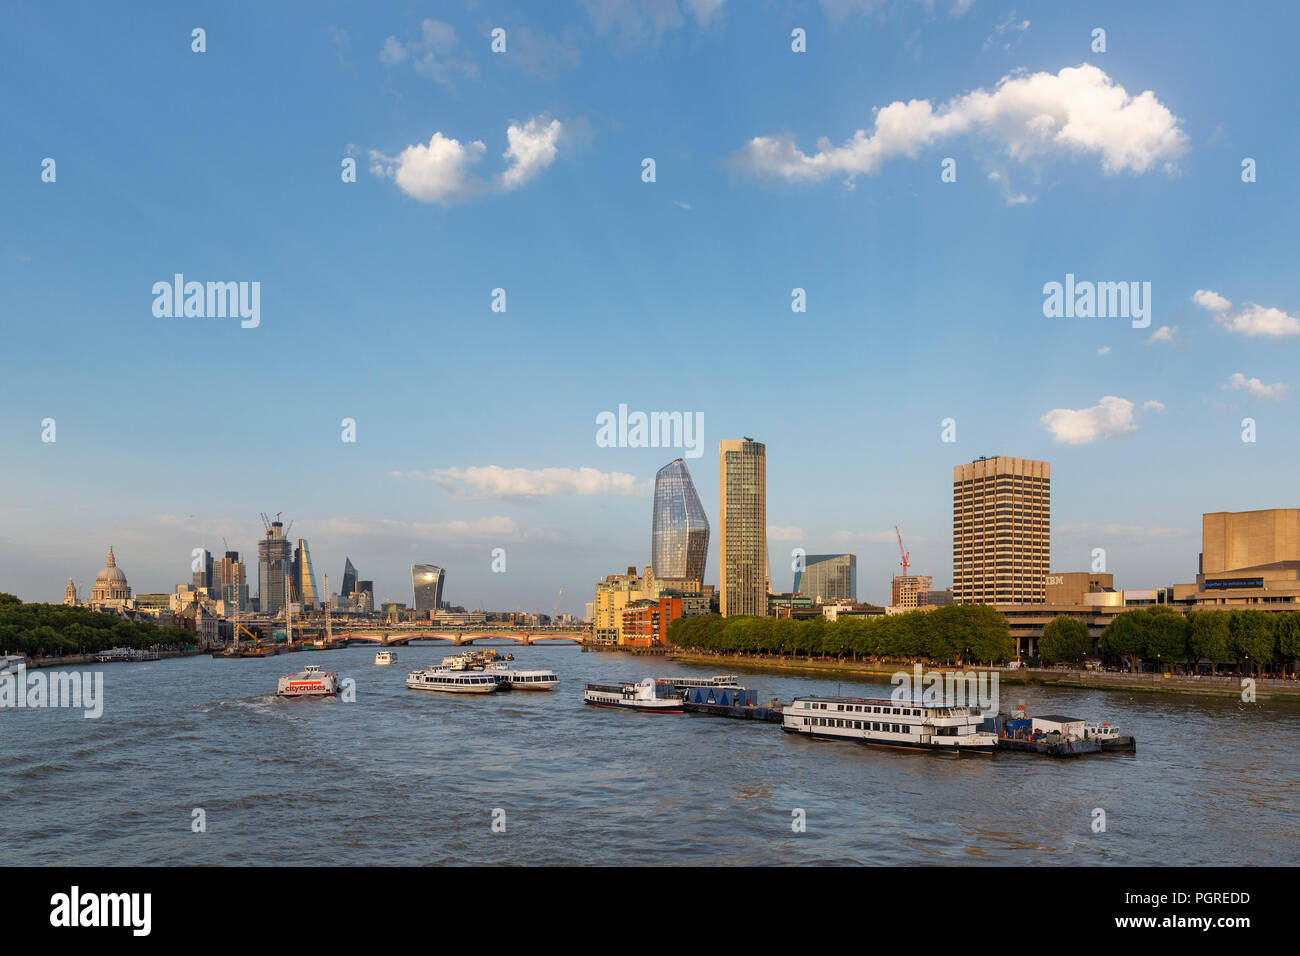 LONDON, UK - AUGUST 6, 2018 :  Boats on the River Thames by Waterloo Bridge with the Southbank centre, Blackfriars Bridge, St Paul's and city skyscrap Stock Photo